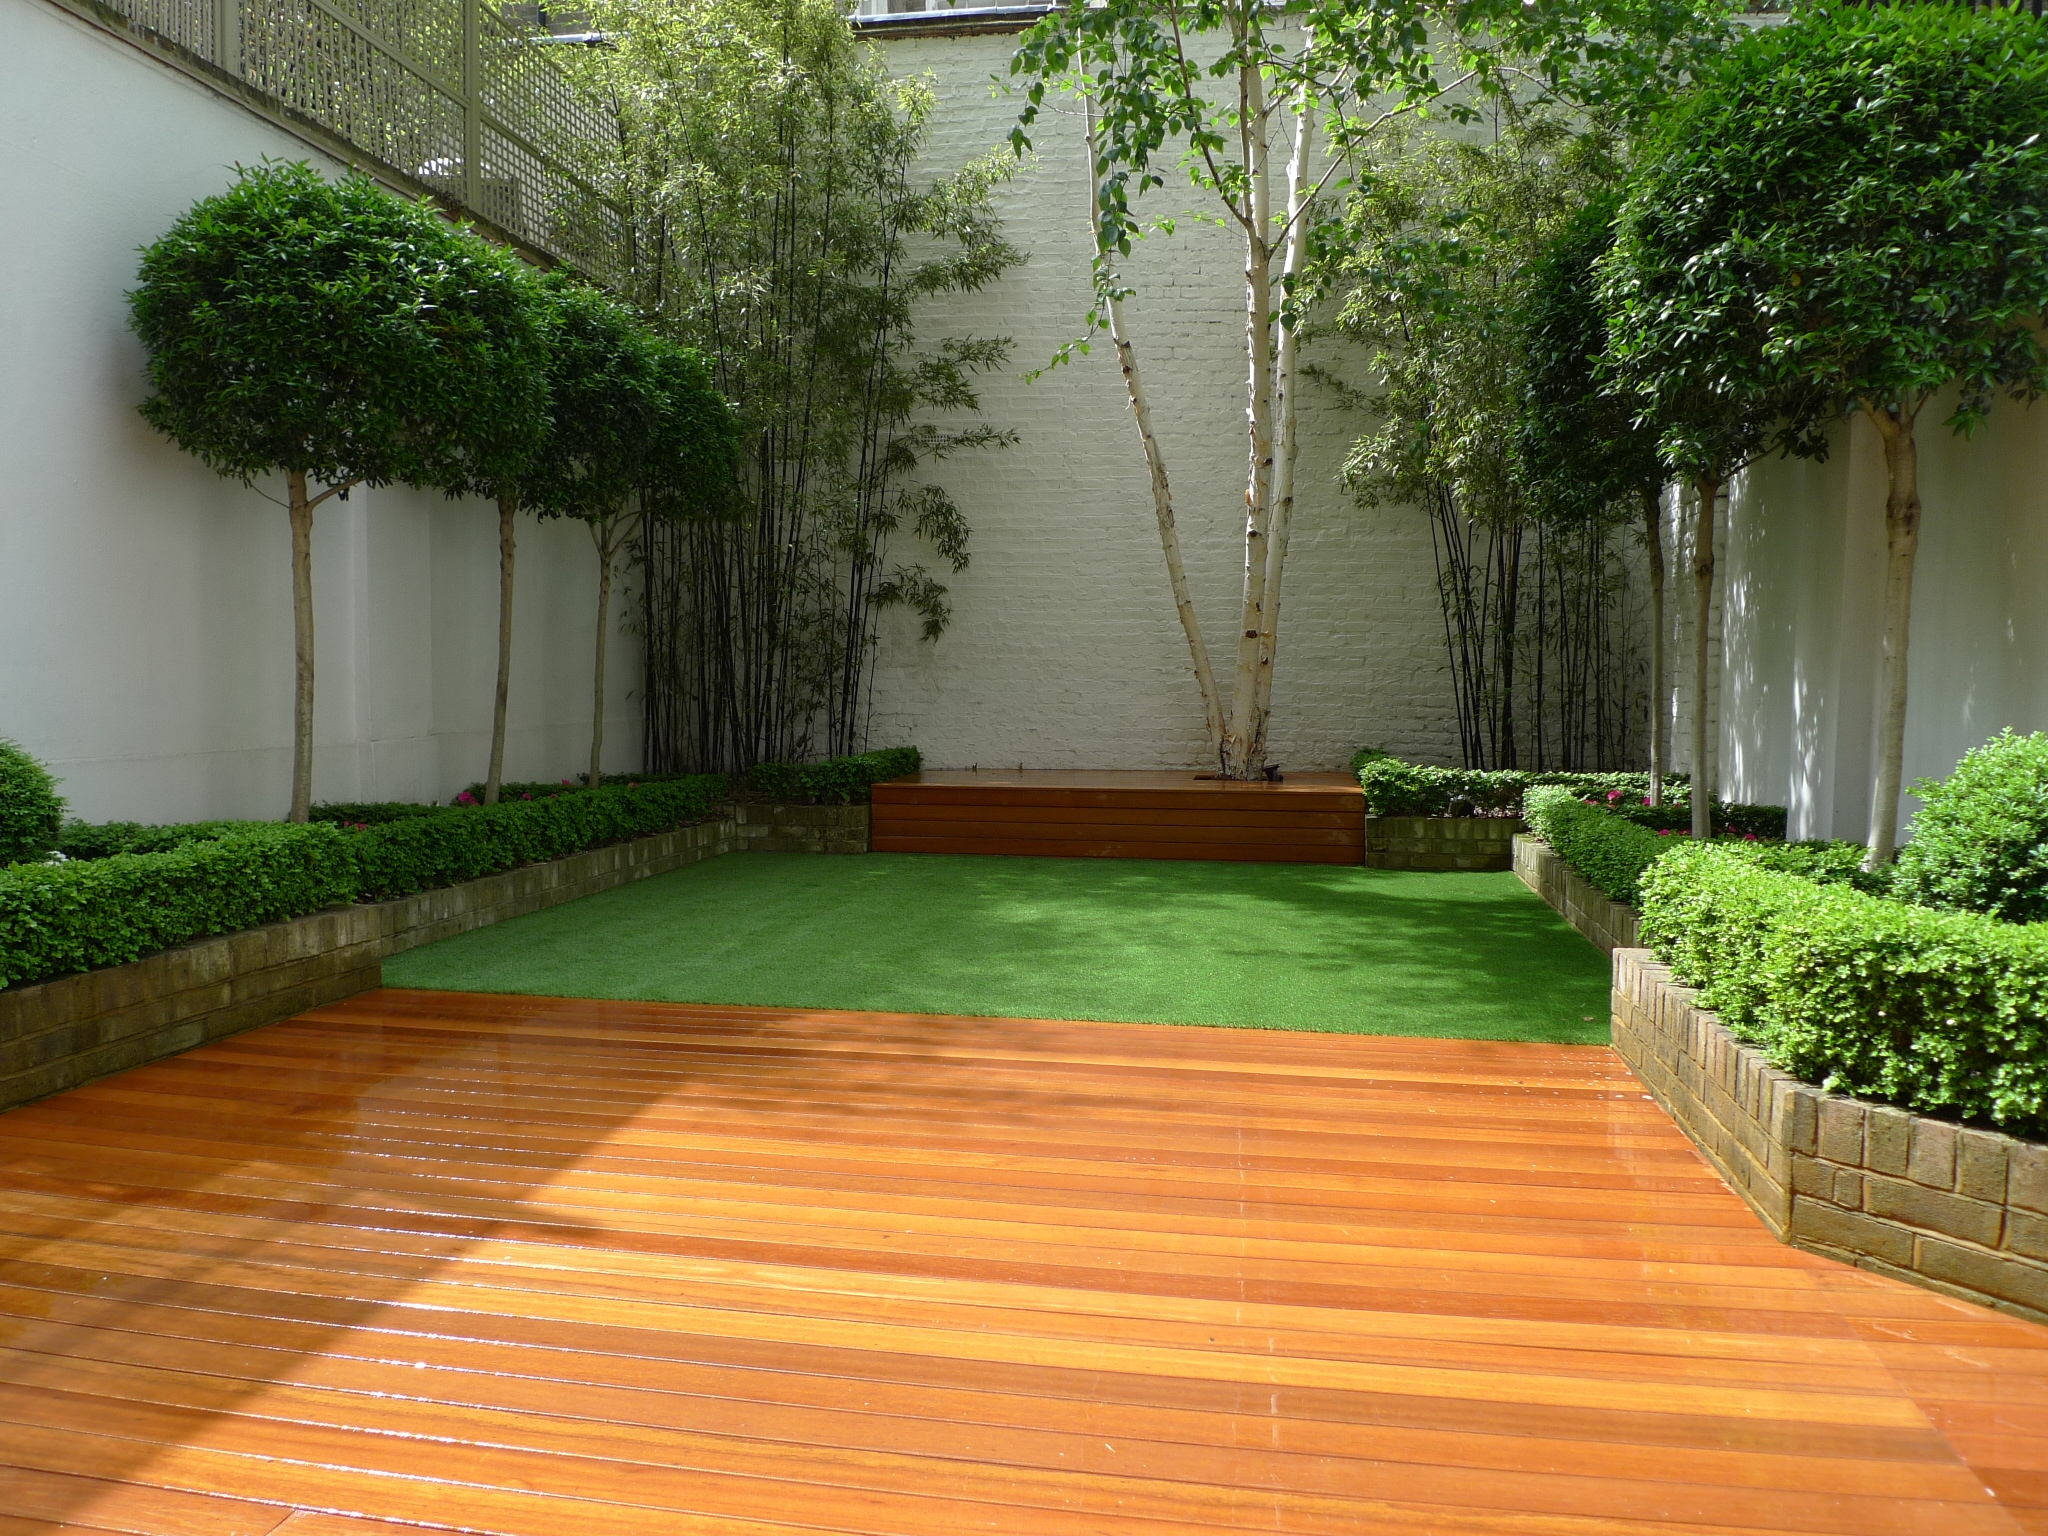 Chelsea garden design hardwood decking artificial grass for Landscape design pictures